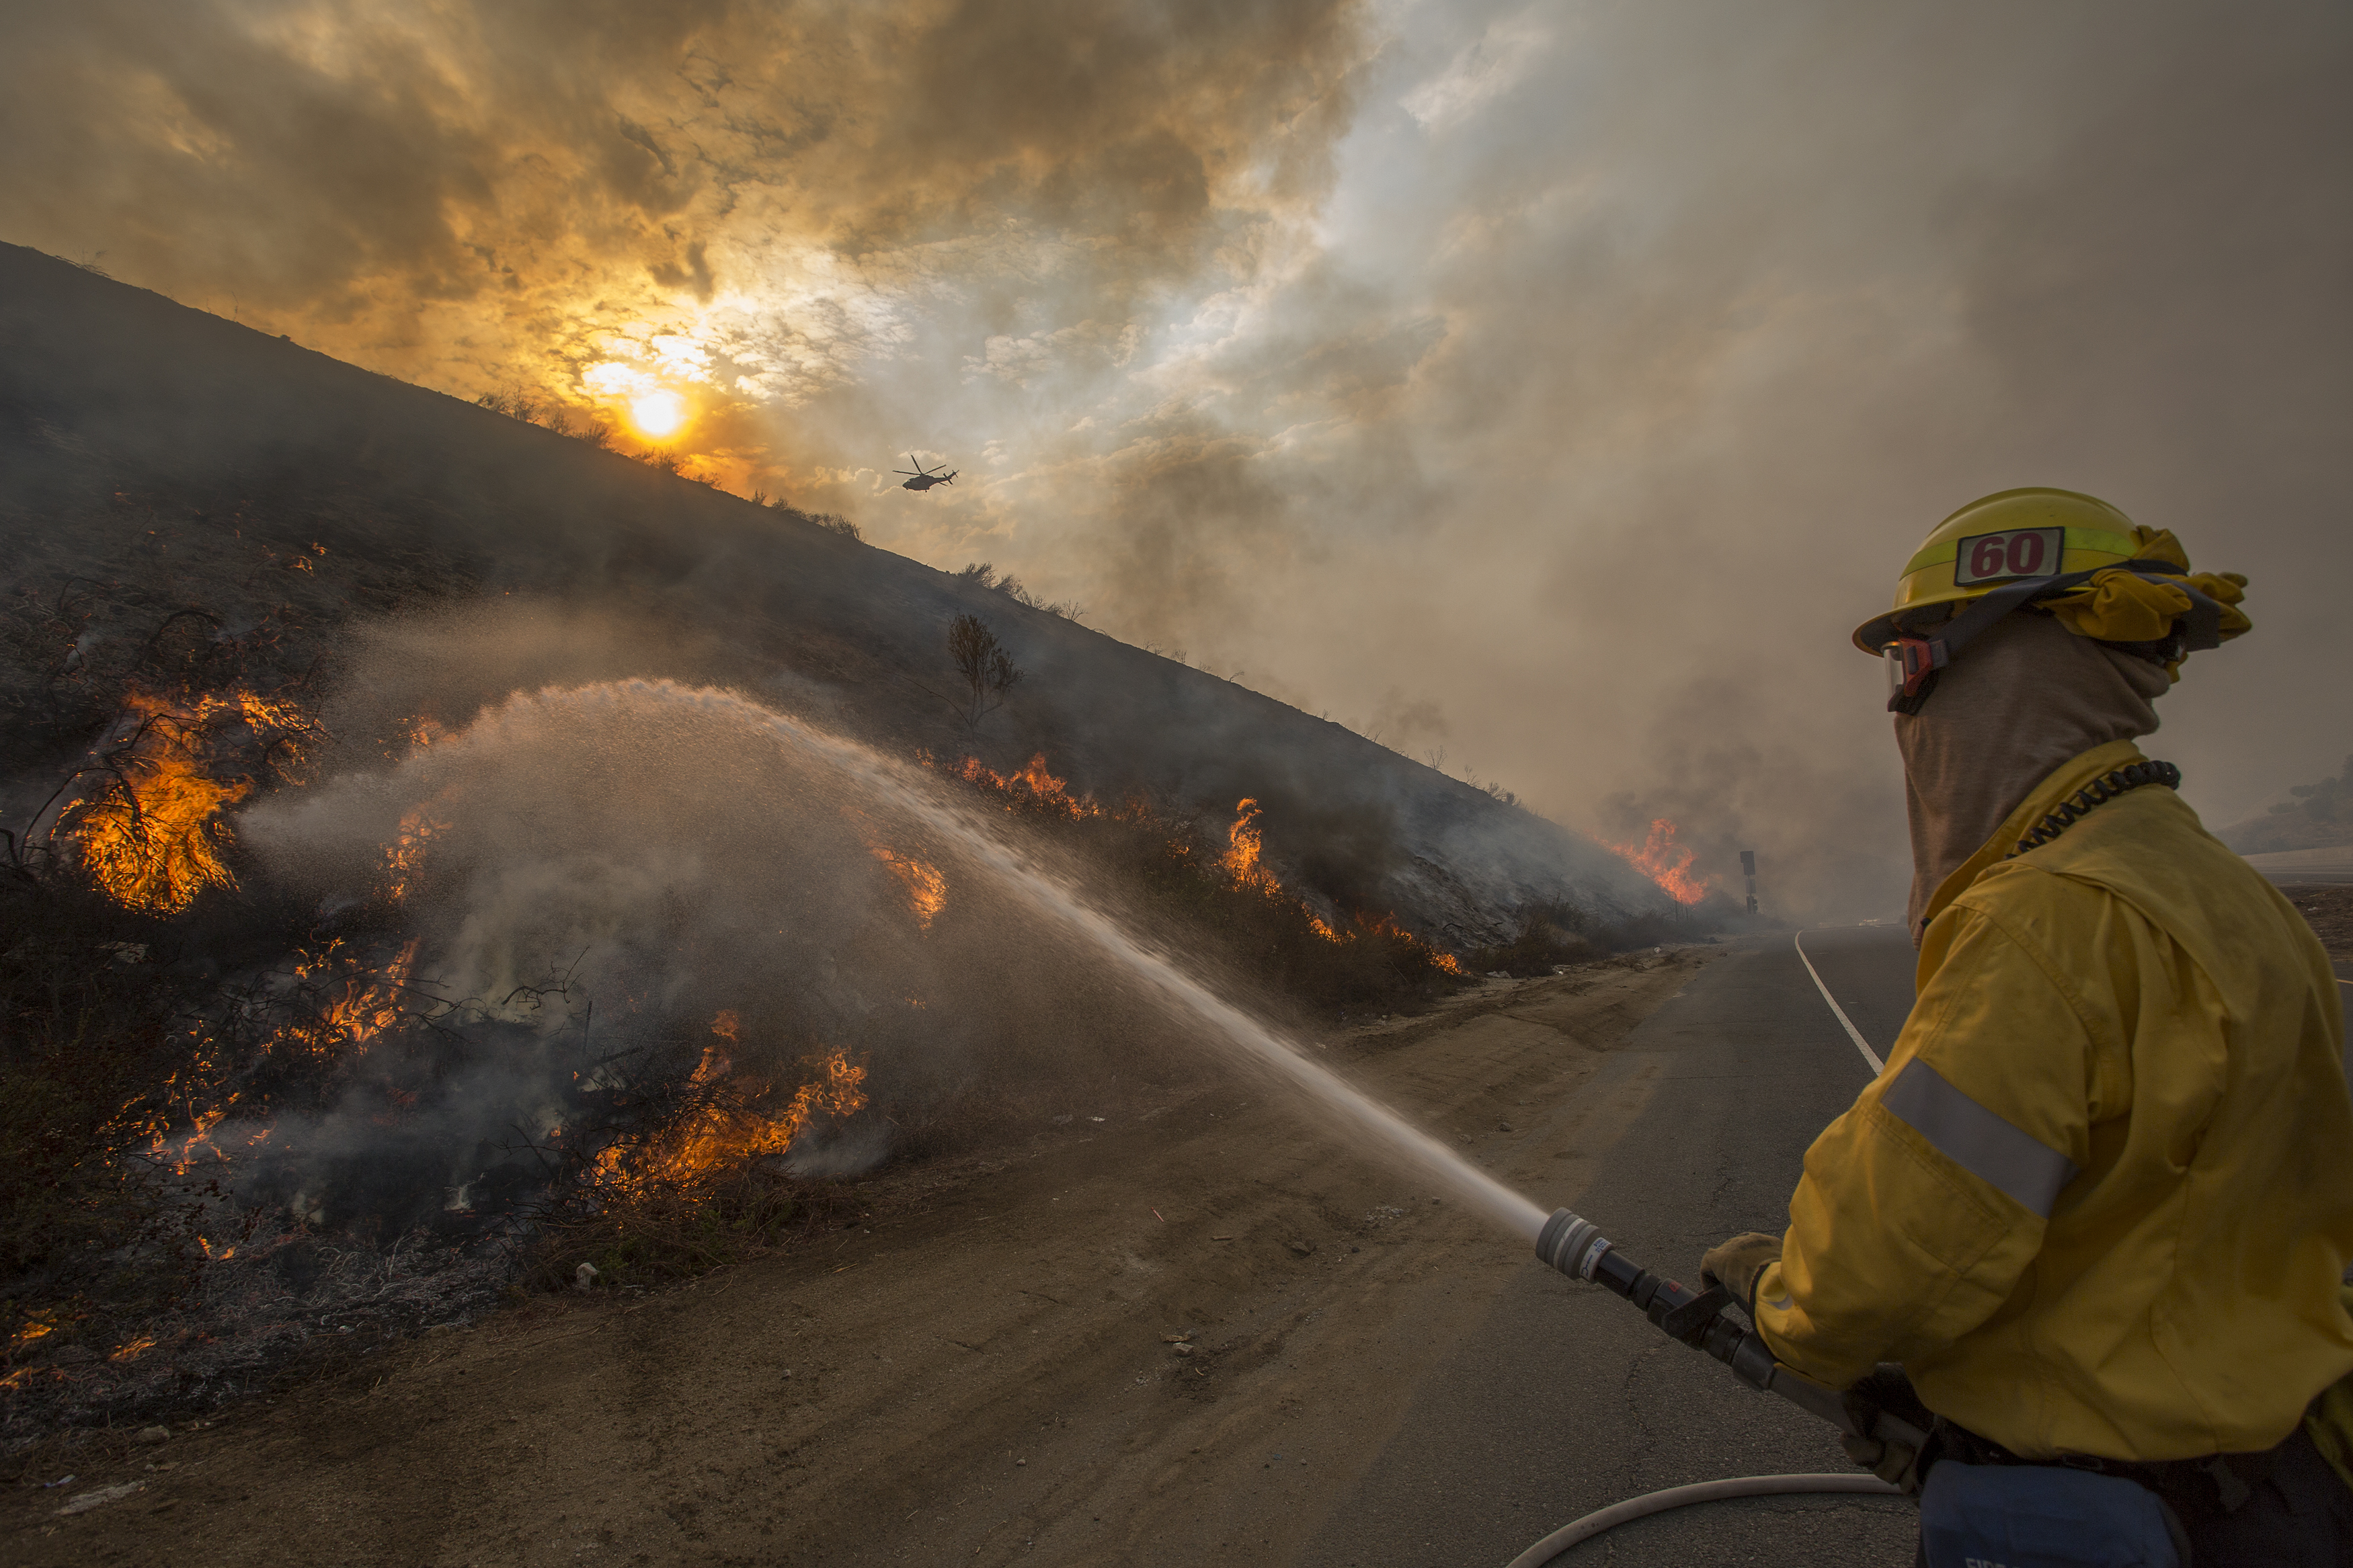 I'm a woman who fought wildfires for 7 years. Climate change is absolutely making them worse.